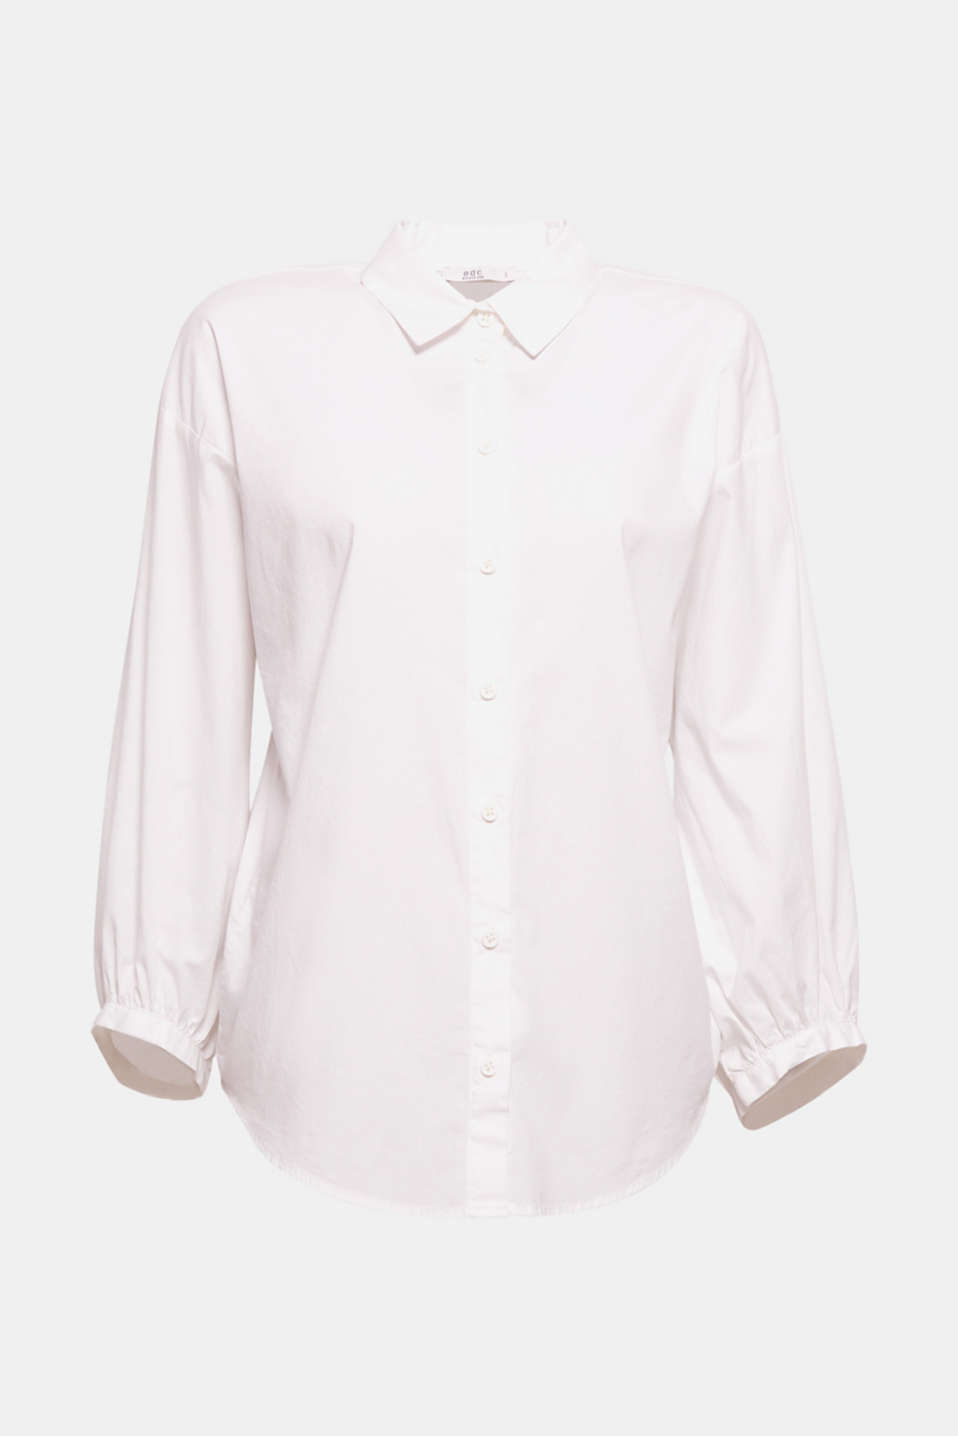 The straight, boxy silhouette with wide balloon sleeves gives this shirt blouse a new, trendy look.